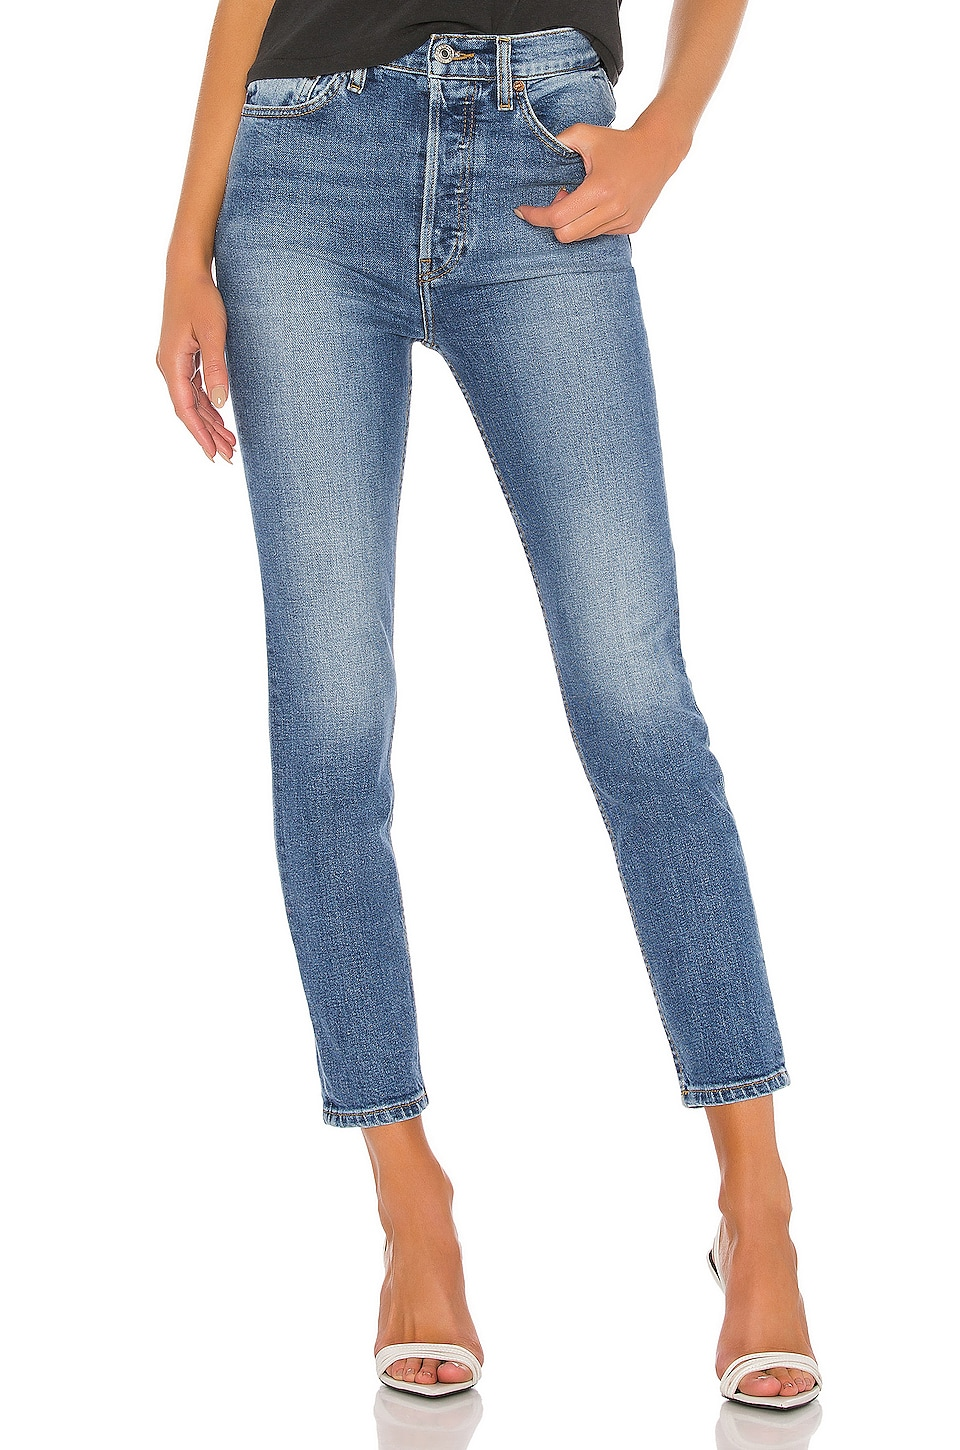 RE/DONE Ultra High Rise Ankle Crop in Dusty Blue